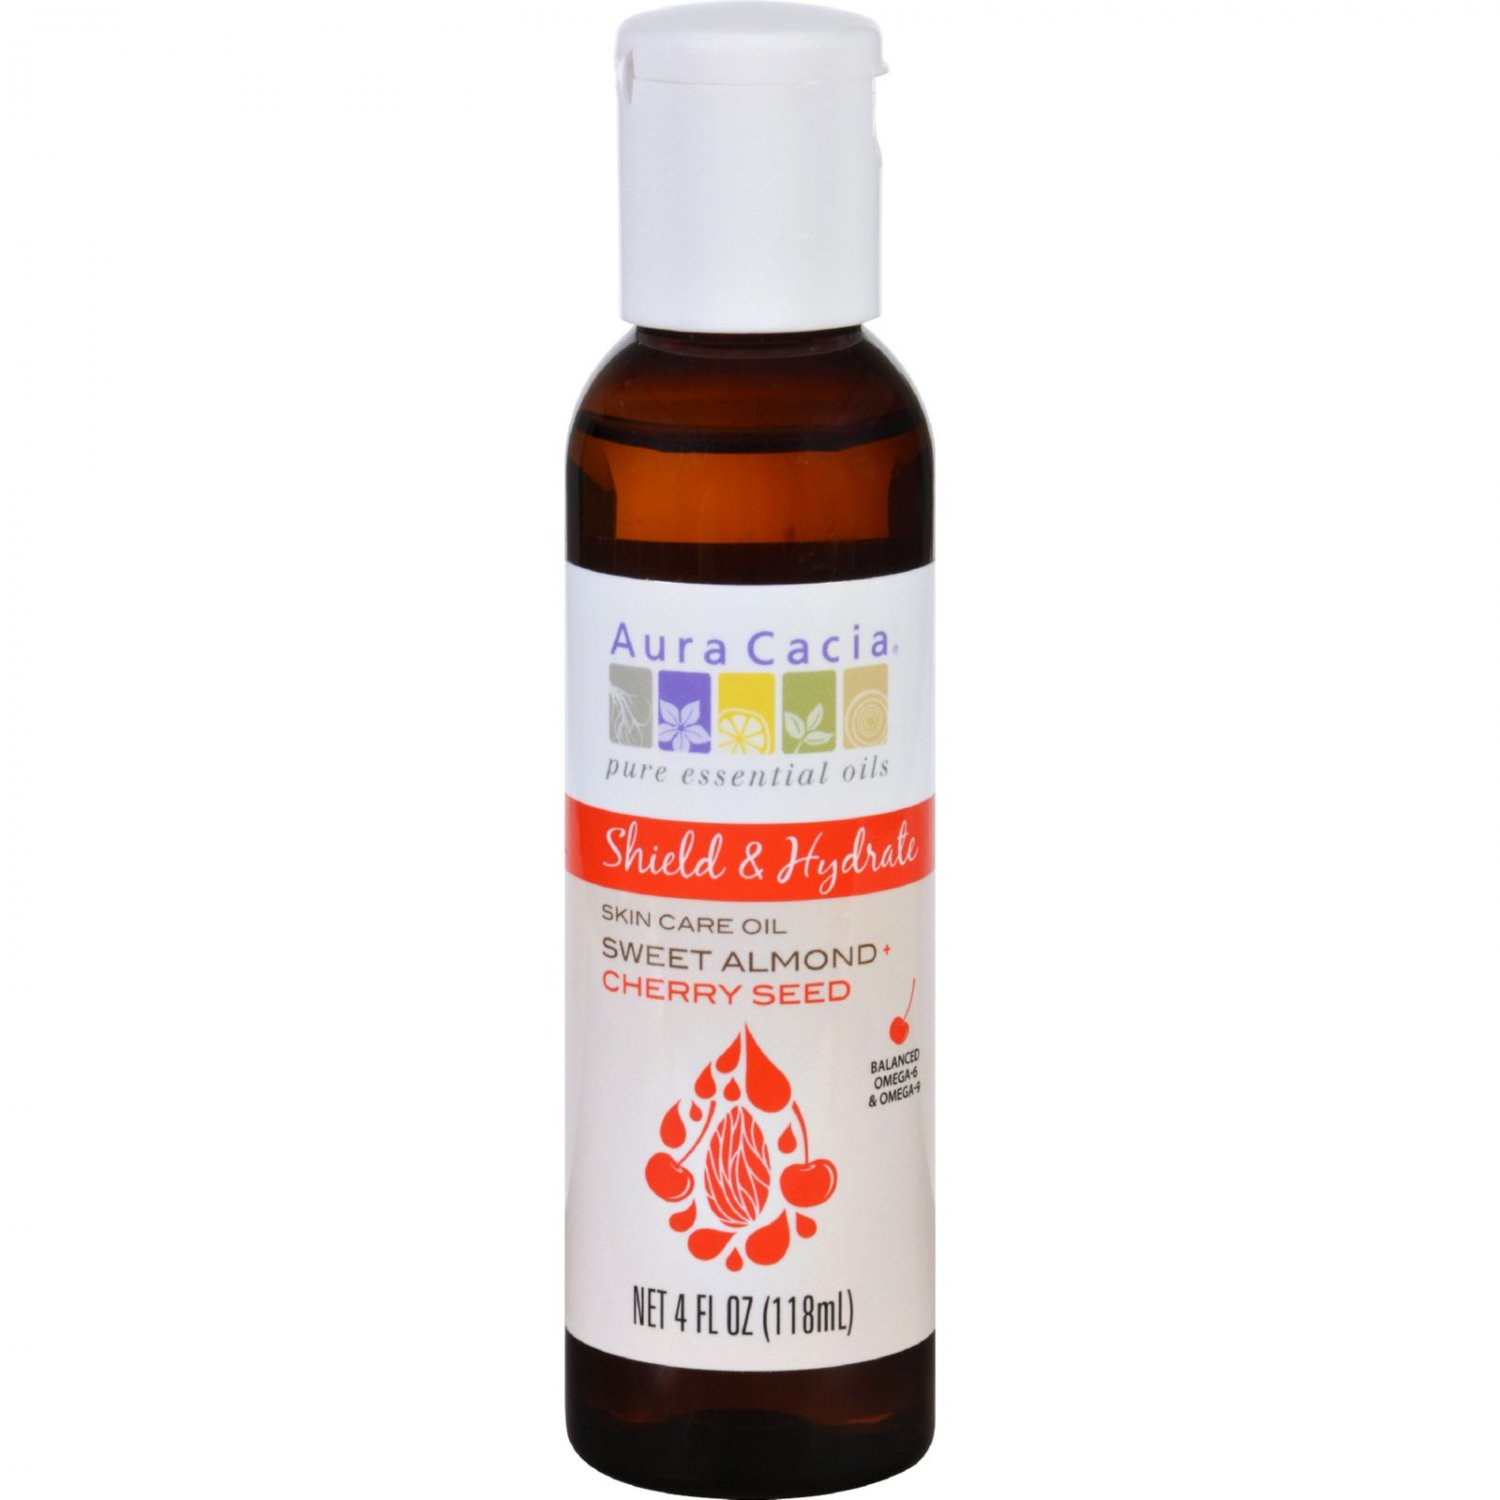 Aura Cacia Skin Care Oil - Shield and Hydrate - Sweet Almond plus Cherry Seed - 4 oz